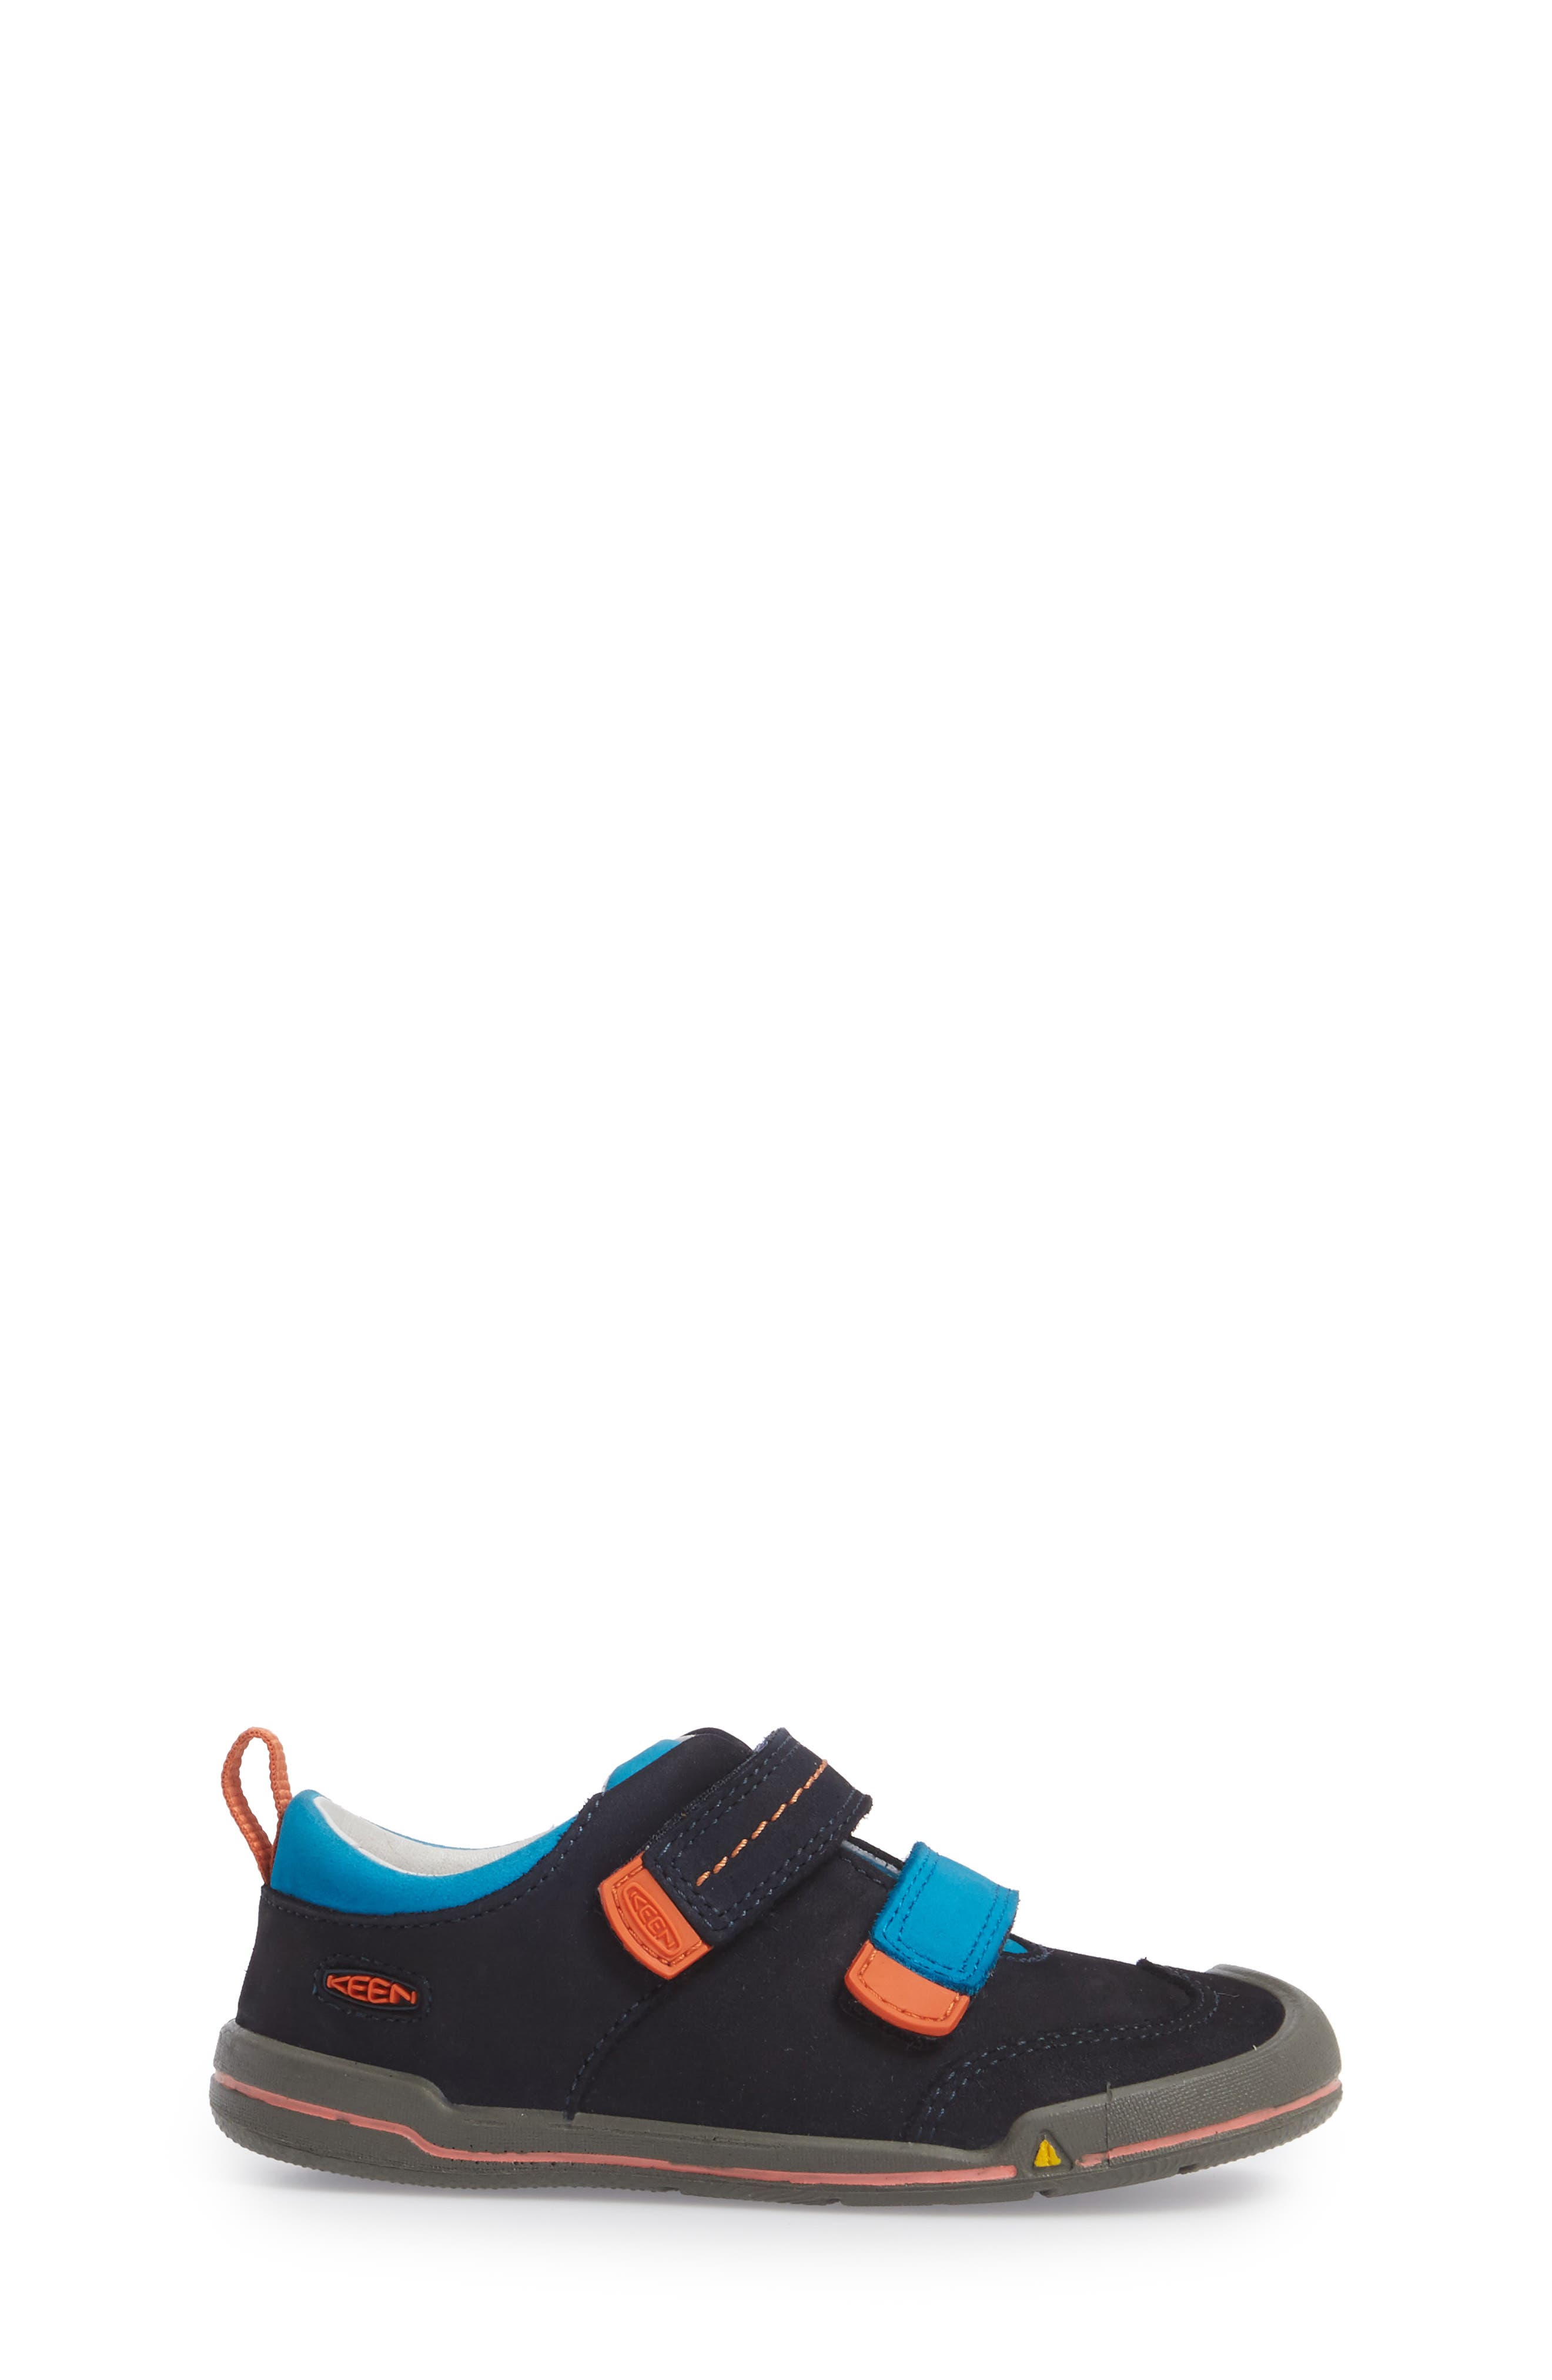 Sprout Double Strap Sneaker,                             Alternate thumbnail 3, color,                             Dress Blues/ Koi